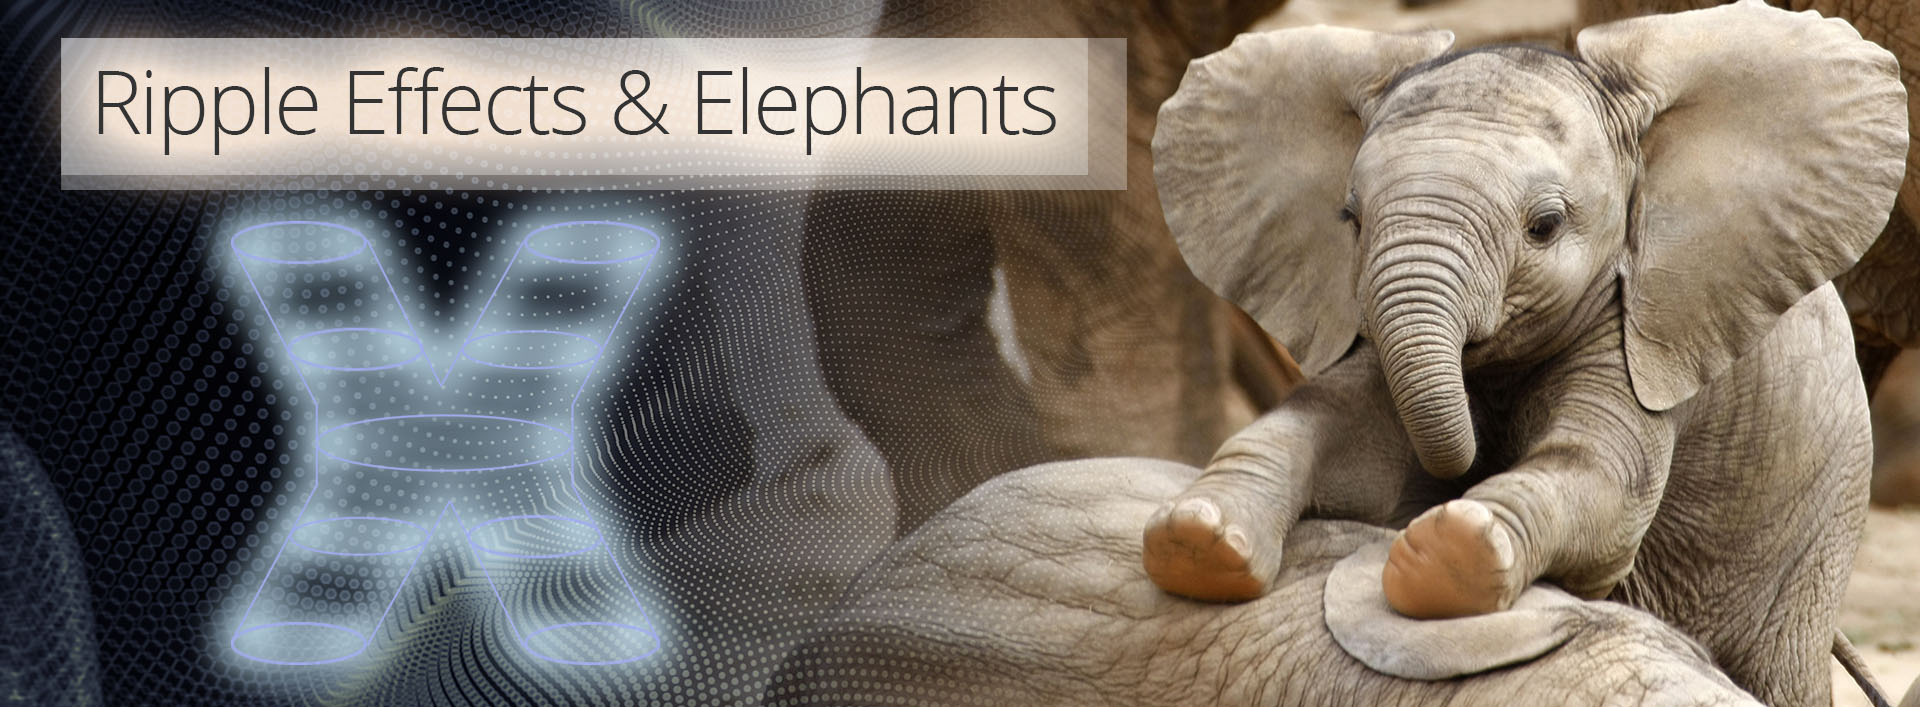 Ripple Effects & Elephants